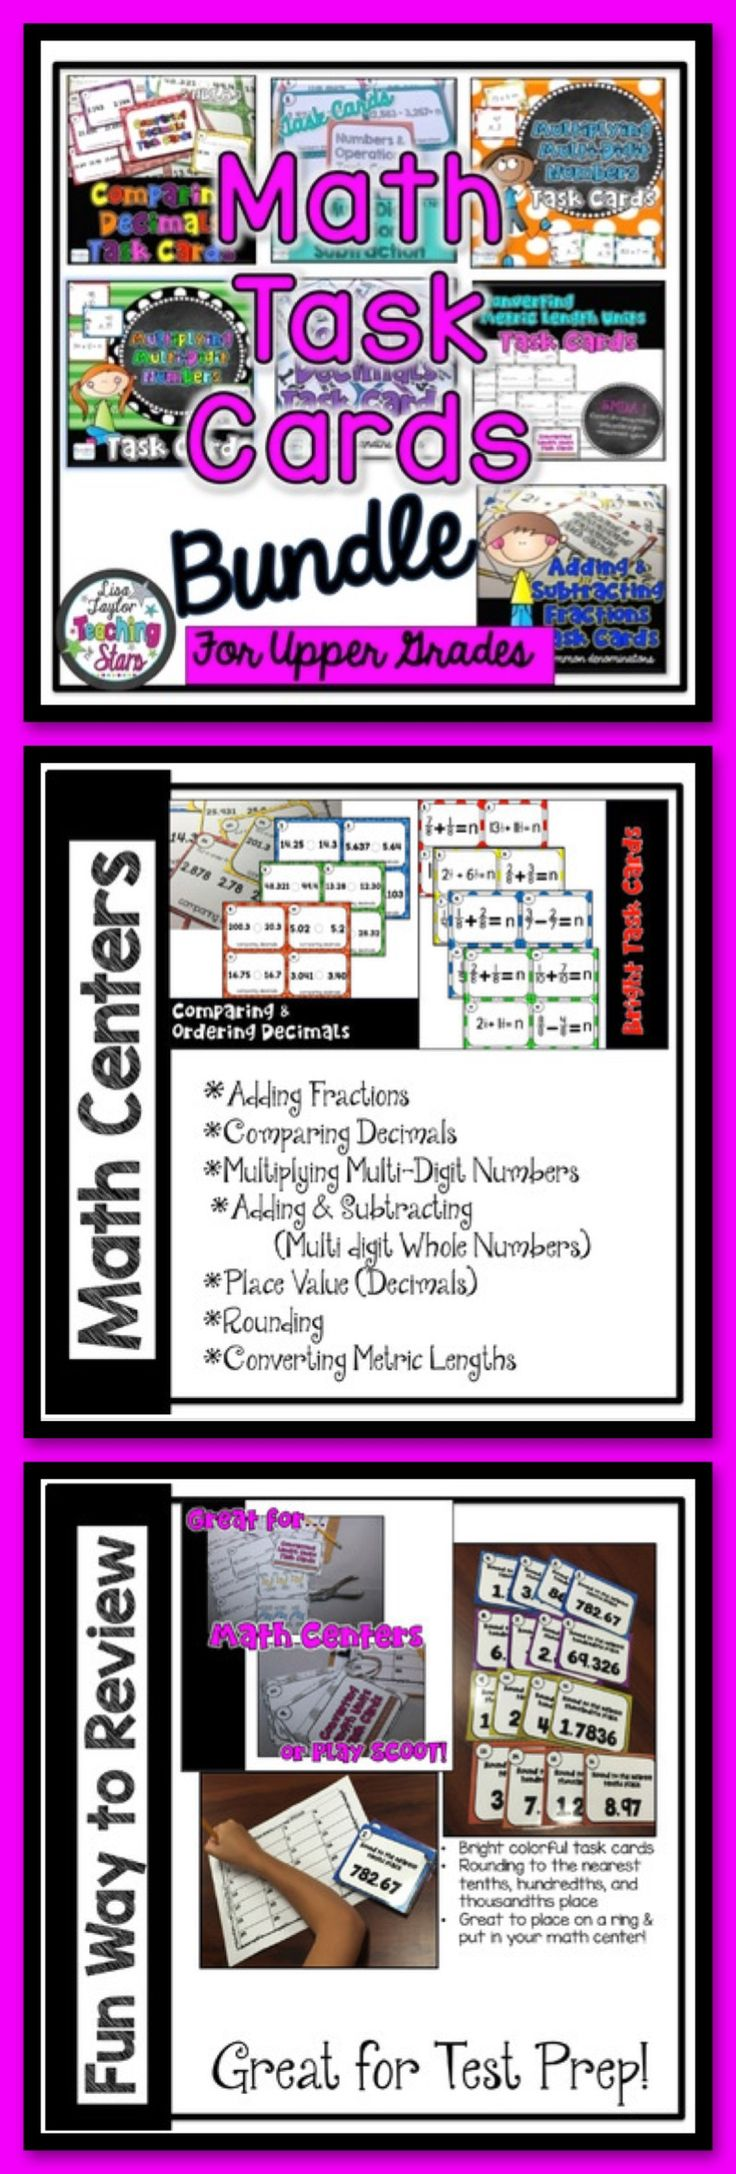 Bilingual dolphin counting card 6 clipart etc - Math Task Cards Bundle